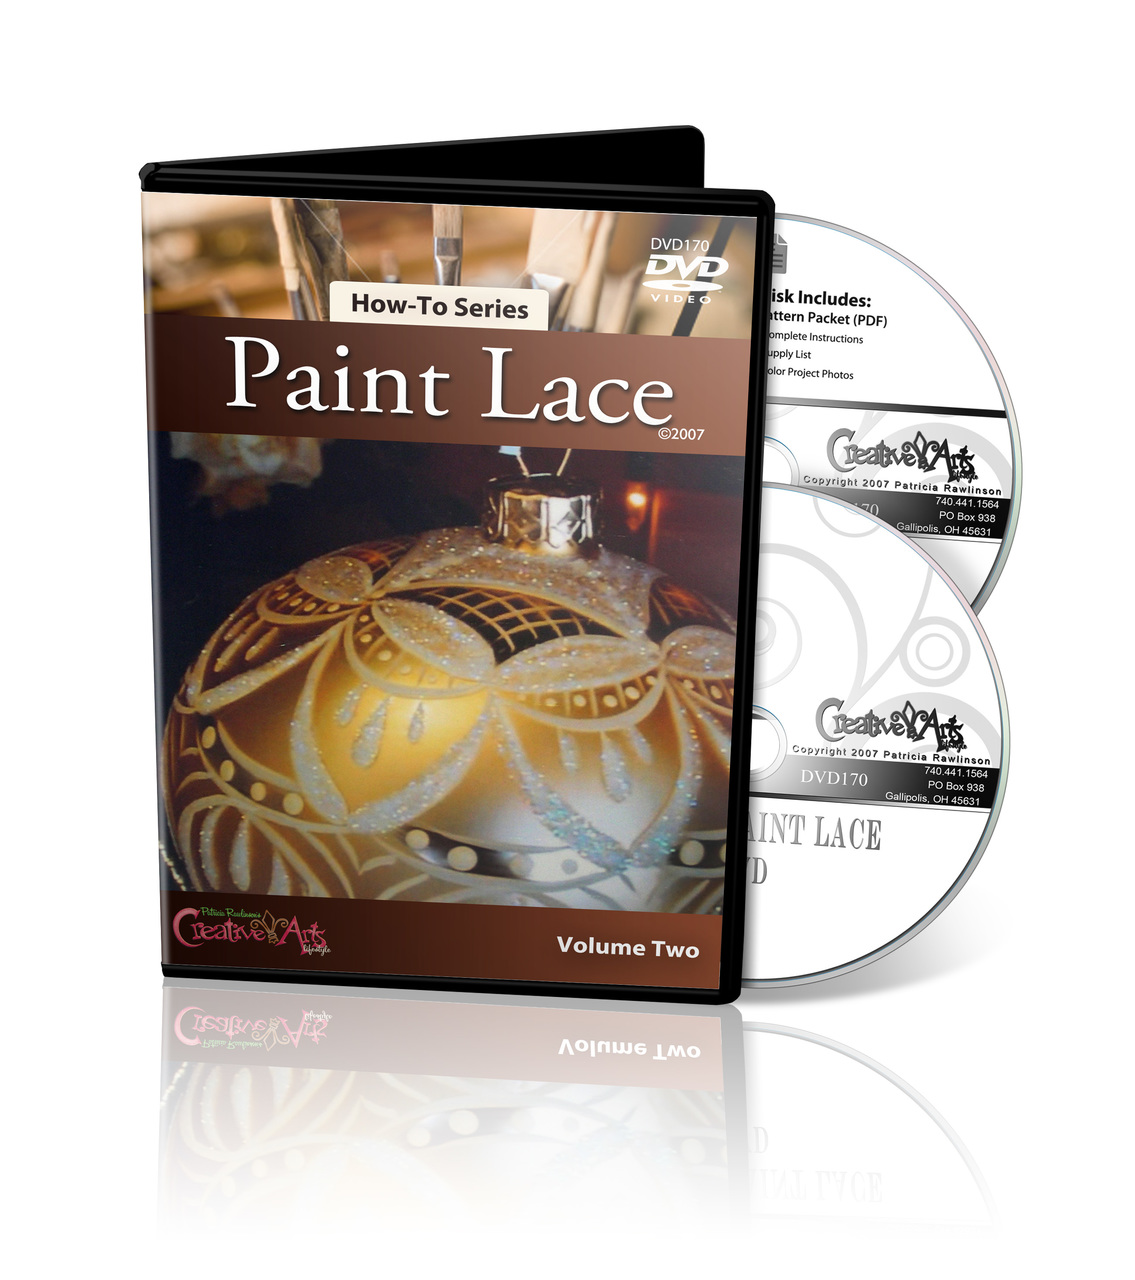 How To Paint Lace: How to Series Volume 2